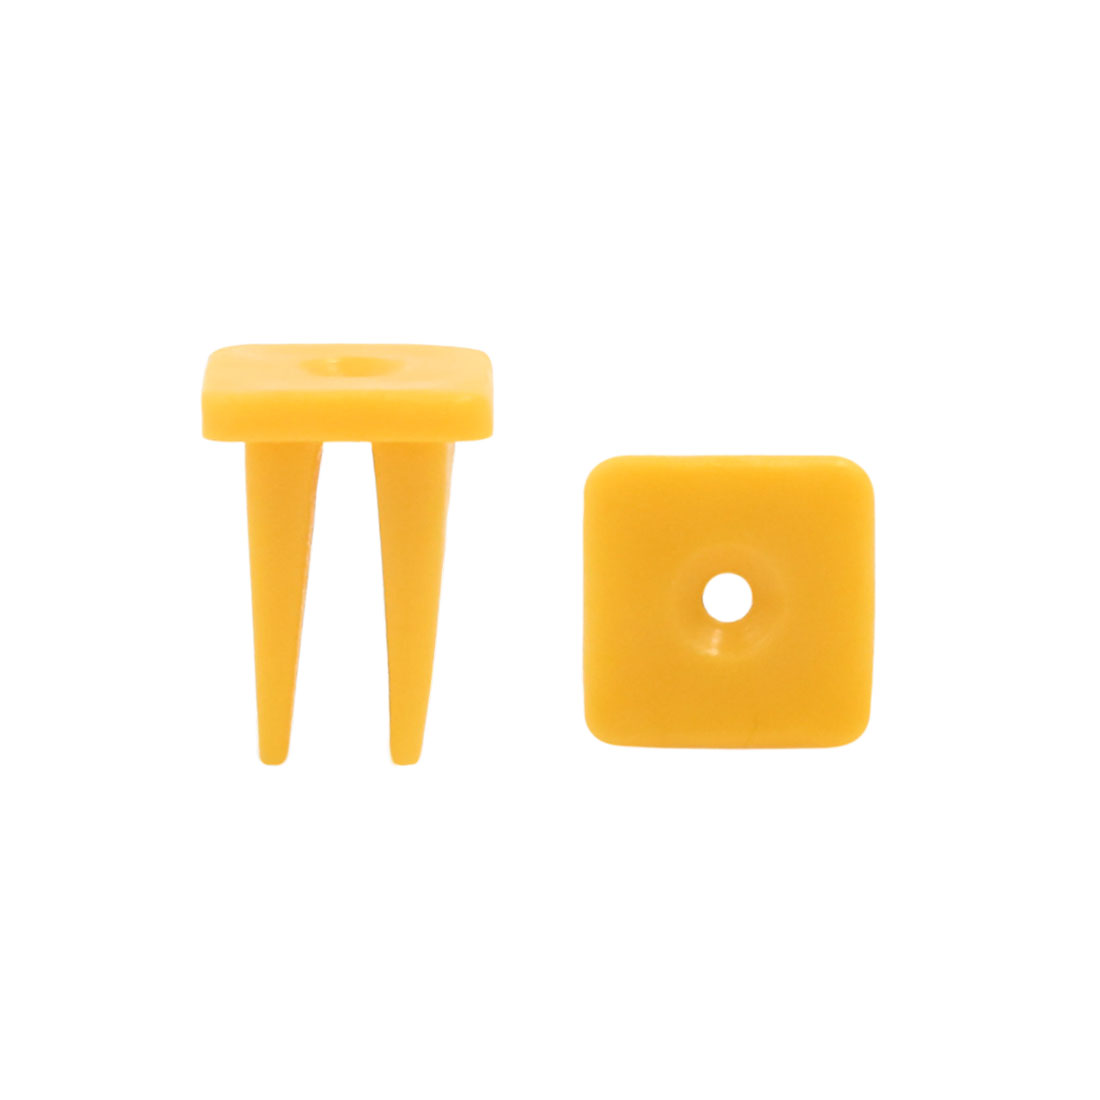 30Pcs Yellow Plastic Rivet Door Trim Panel Hood Moulding Clips 8 x 8mm for Car